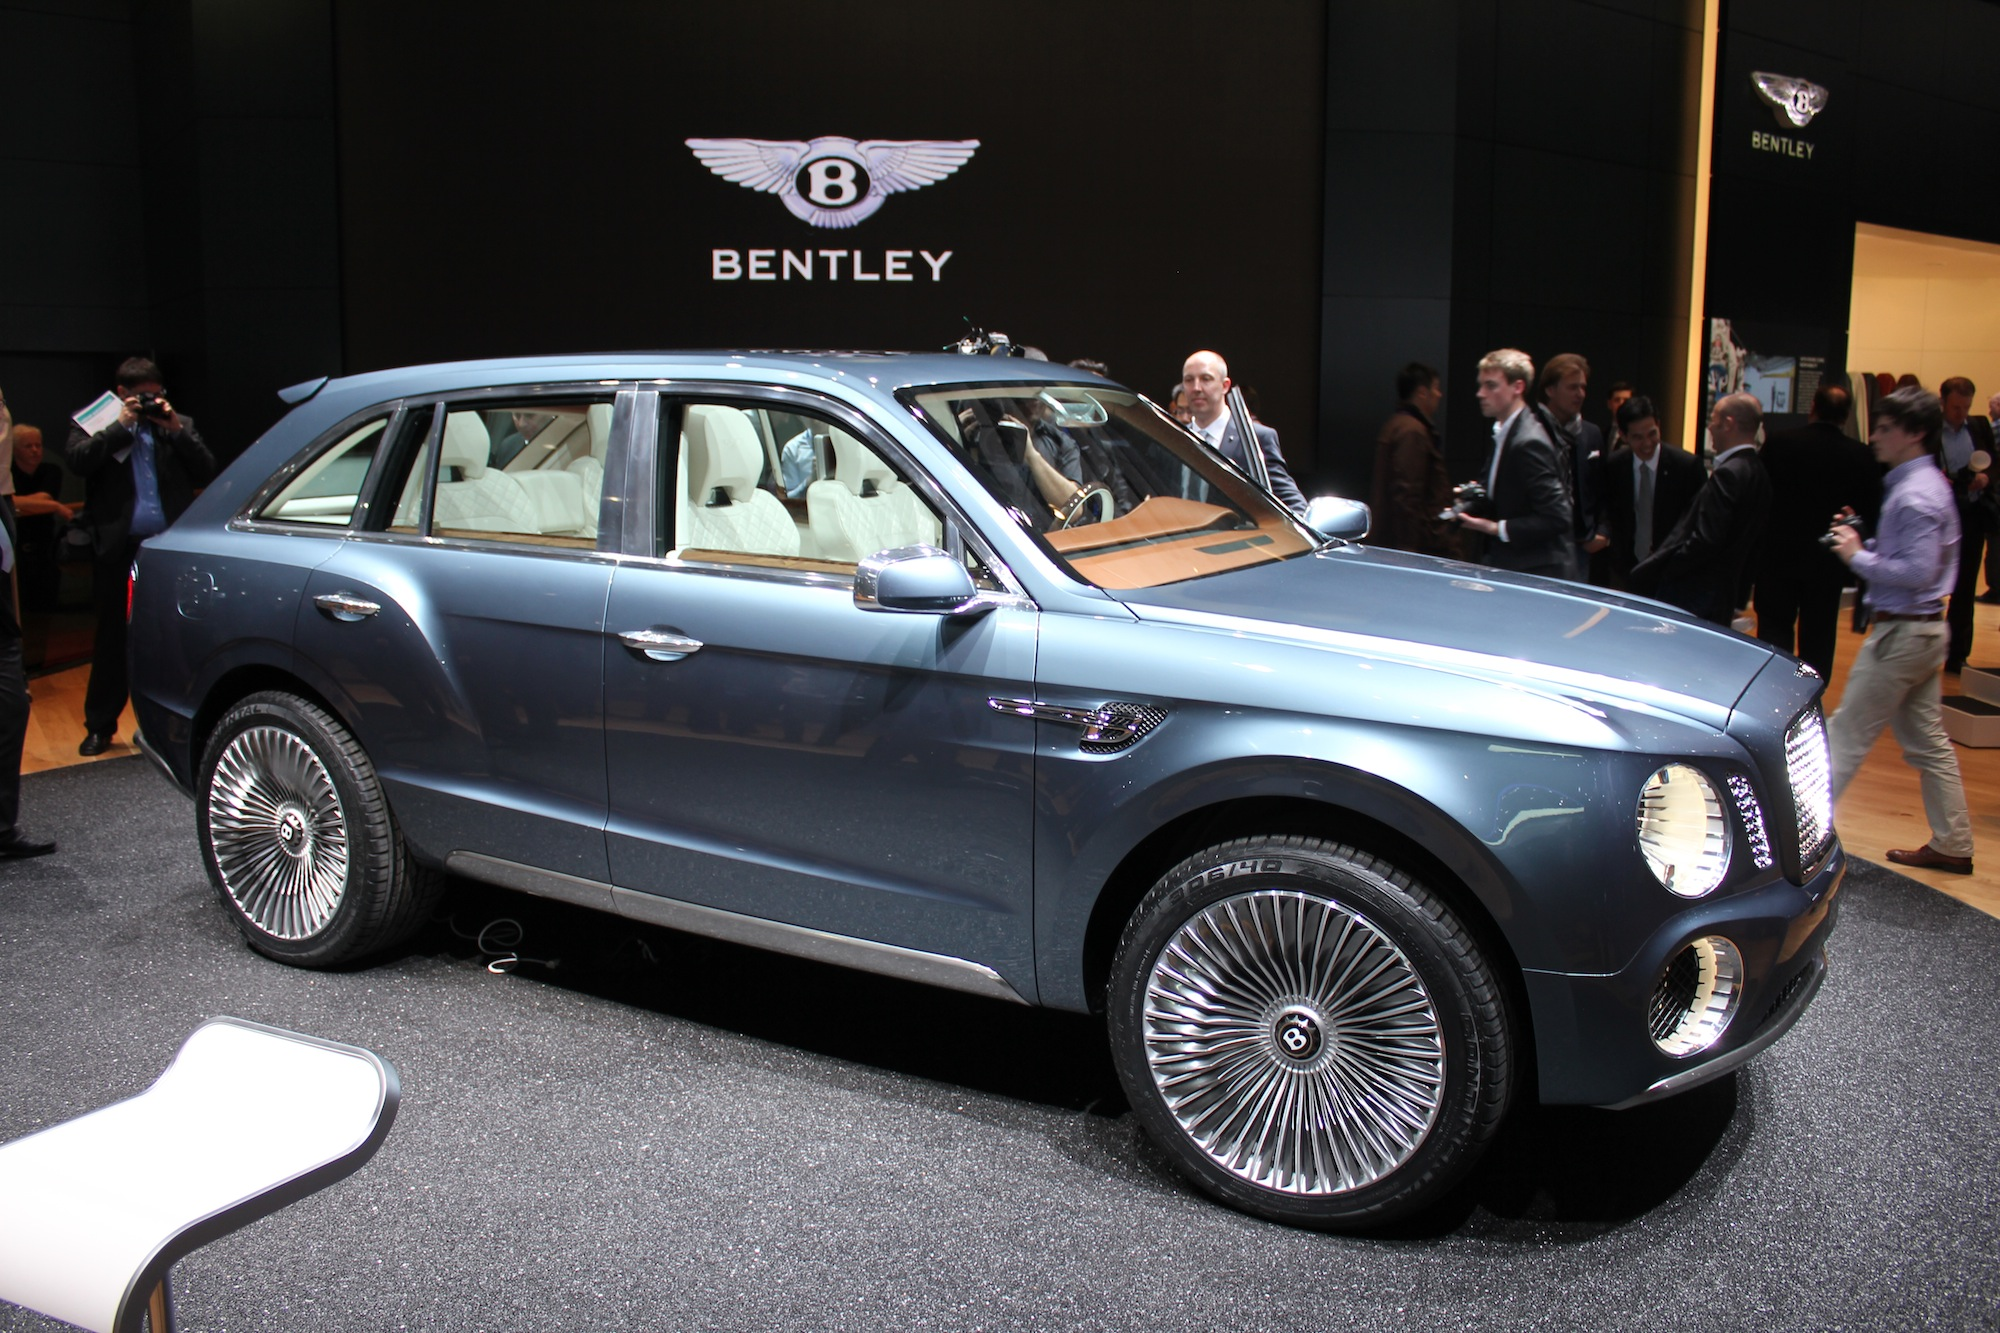 bentley black dating site Get the latest news, exclusives, sport, celebrities, showbiz, politics, business and lifestyle from the sun.